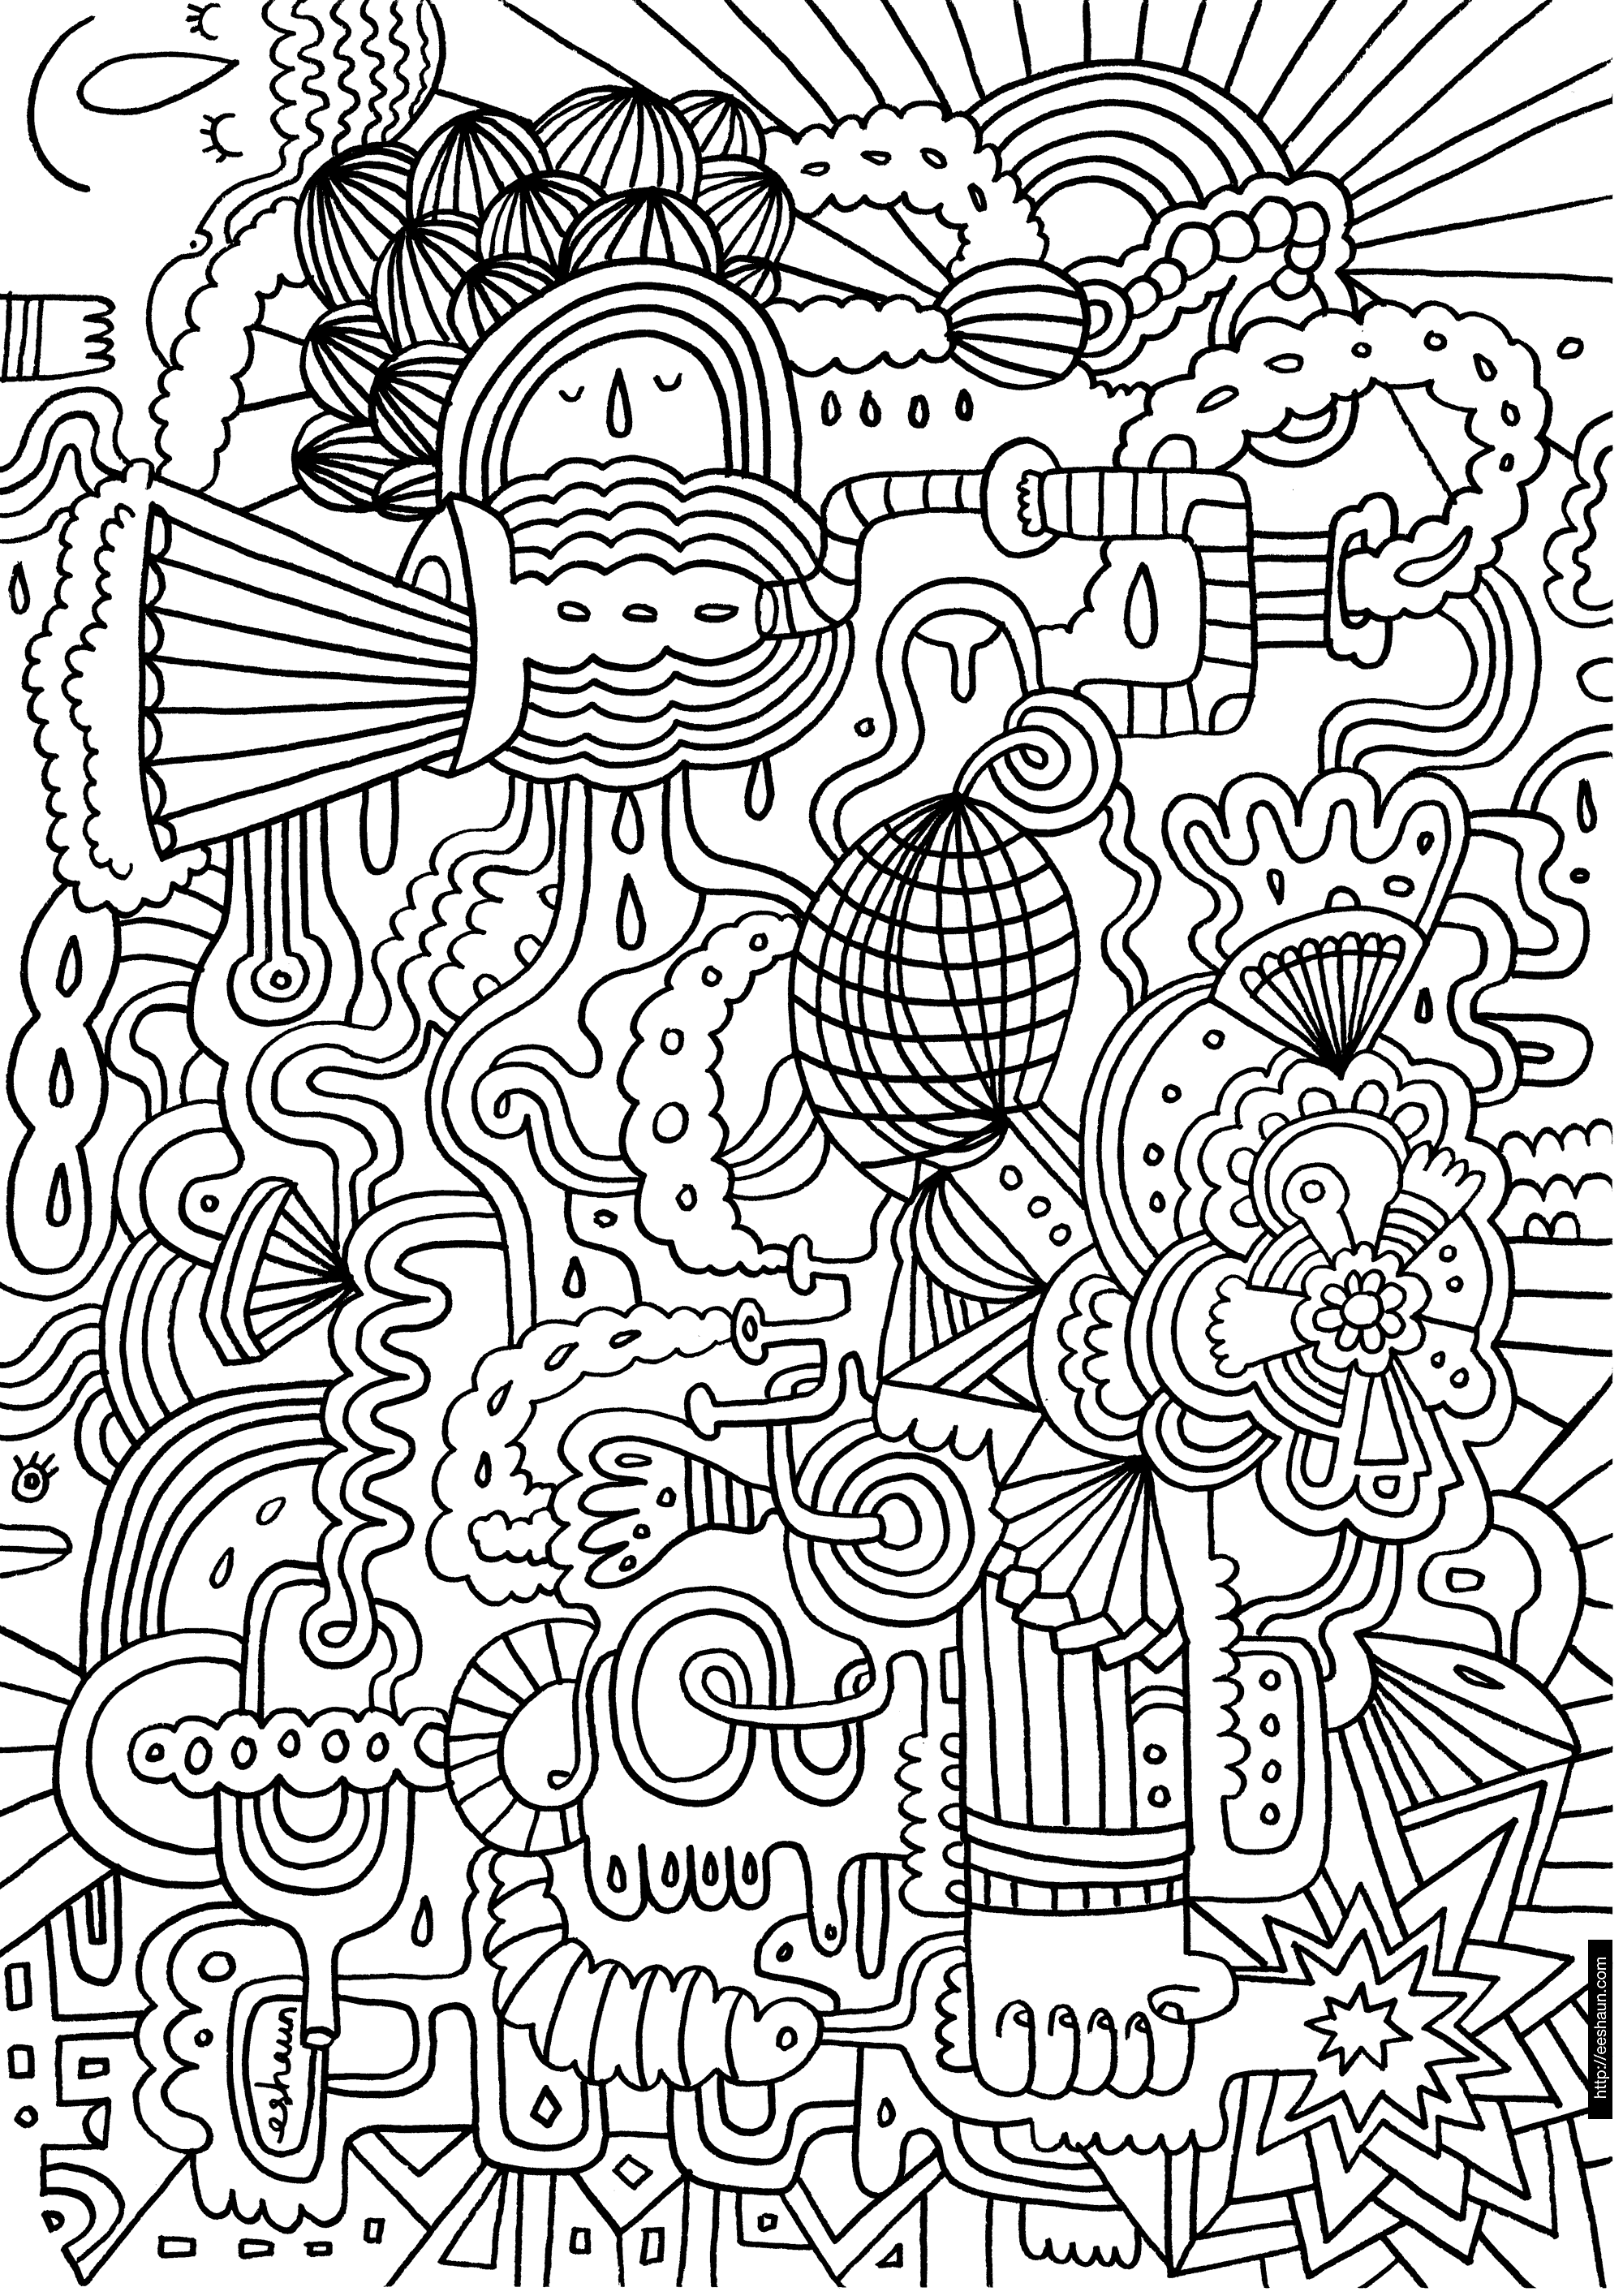 Colouring sheets to colour - Hard Coloring Pages Free Large Images